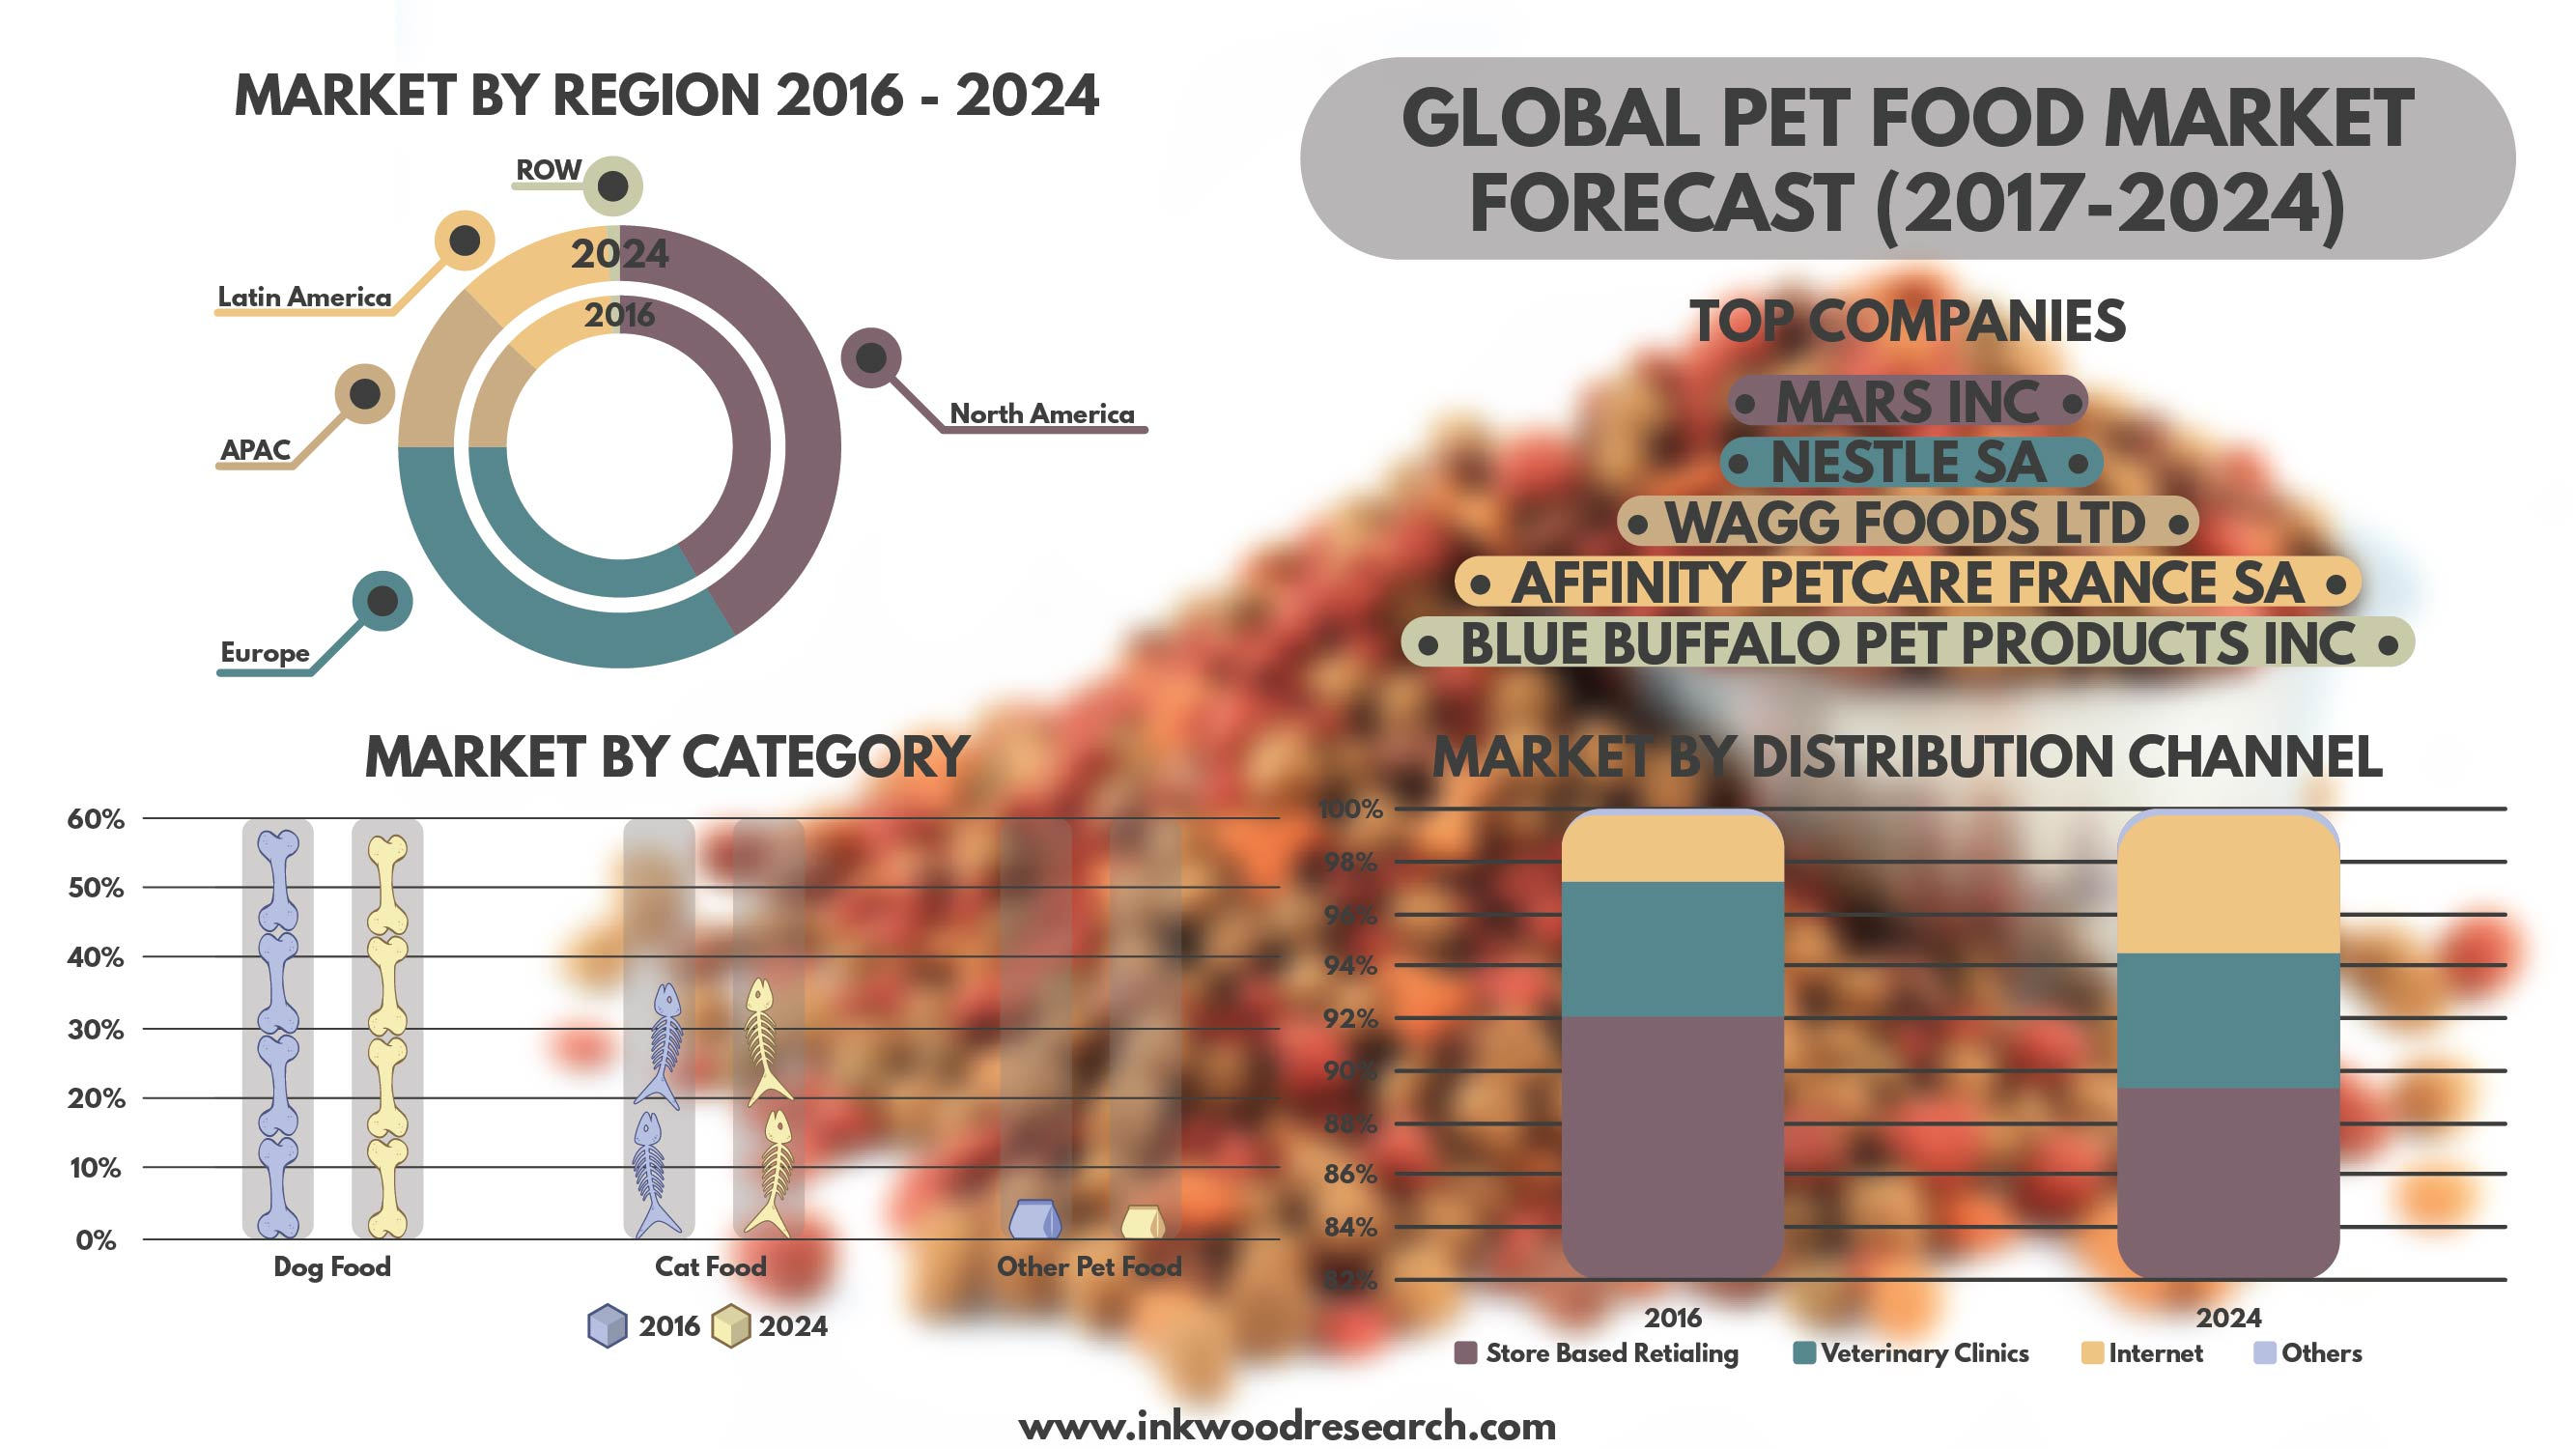 global pet food market growth trends Research corridor recently added new report titled  pet food processing market - global trends, market share, industry size, growth, opportunities, and market forecast - 2018 – 2026 to its repertoire this latest industry research study scrutinizes the pet food processing market by different segments, companies, regions and countries over the forecast period 2018 to 2026.